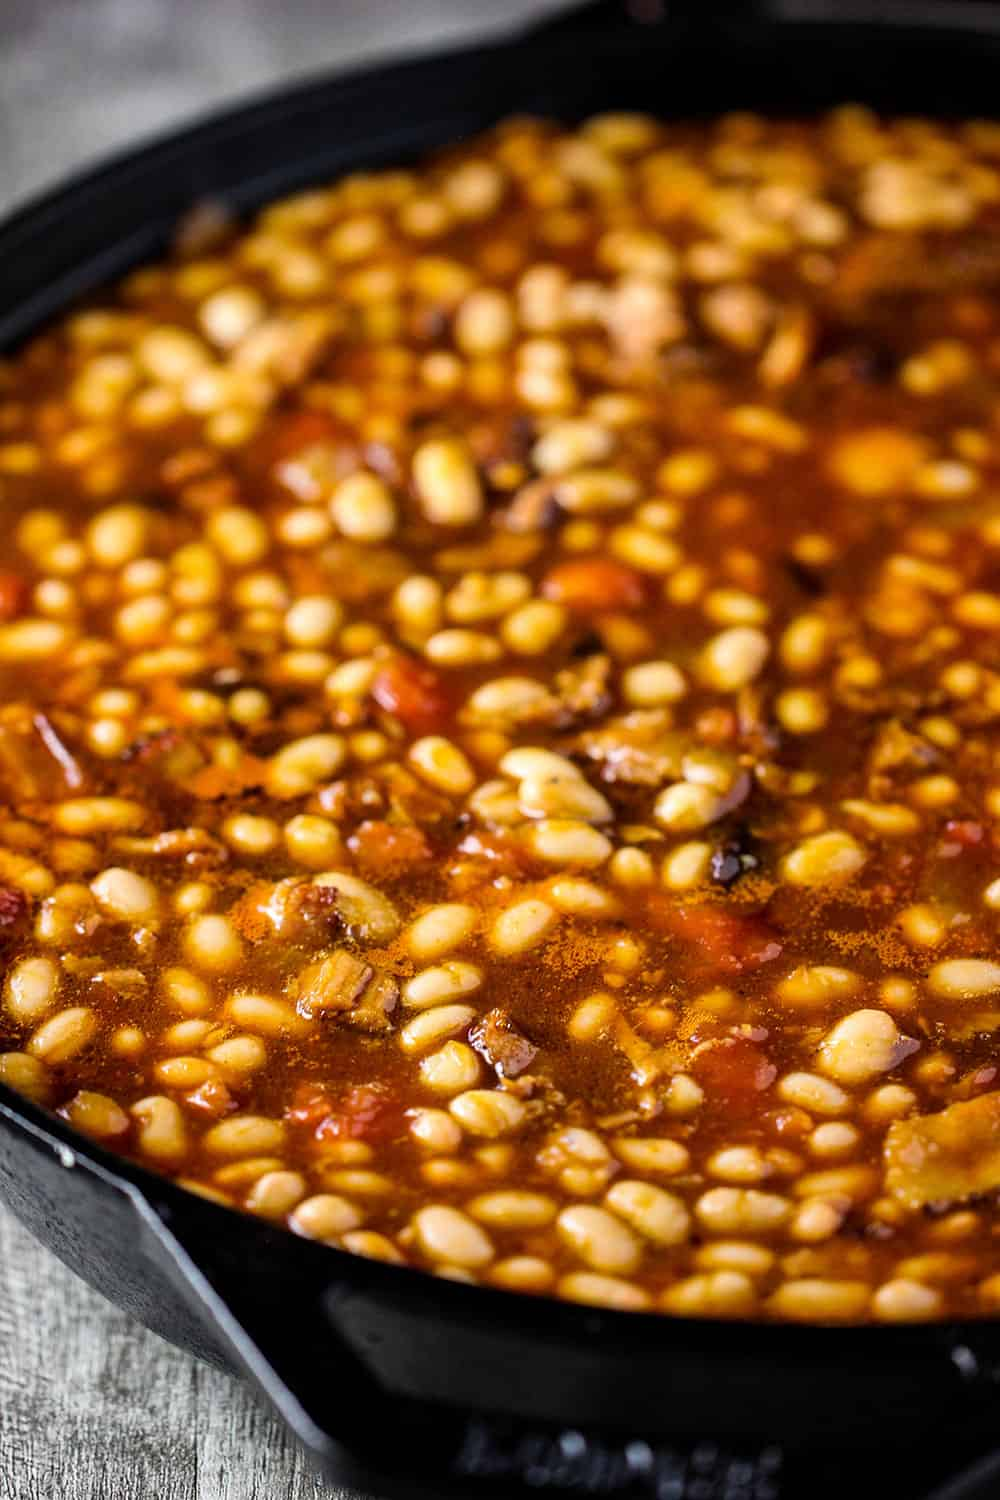 Pre-cooked beans in a sauce in a large cast iron skillet for Southern Baked Beans.